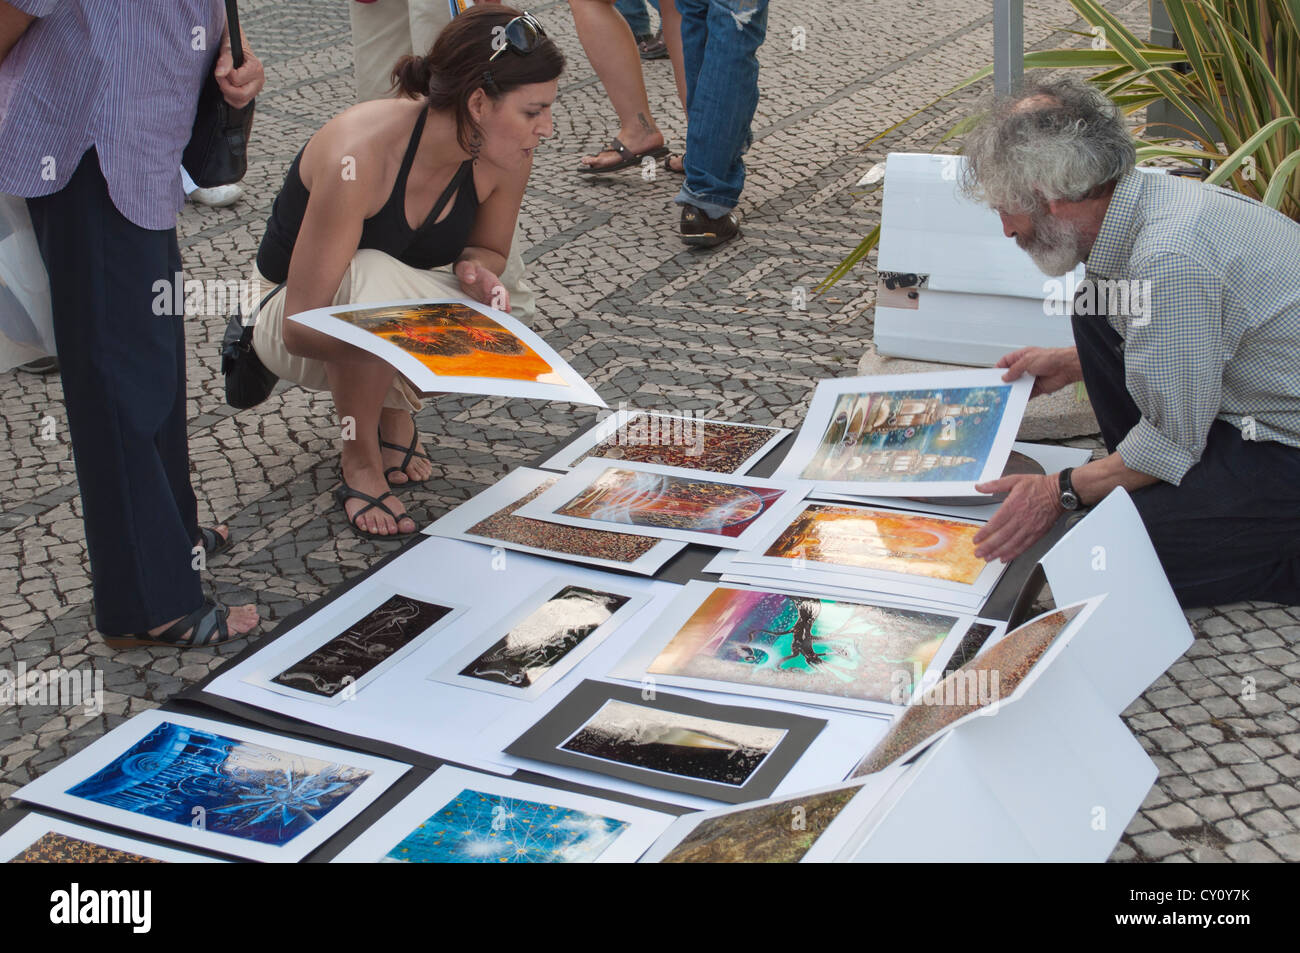 Man Selling Art Works On The Street In Lisbon Portugal